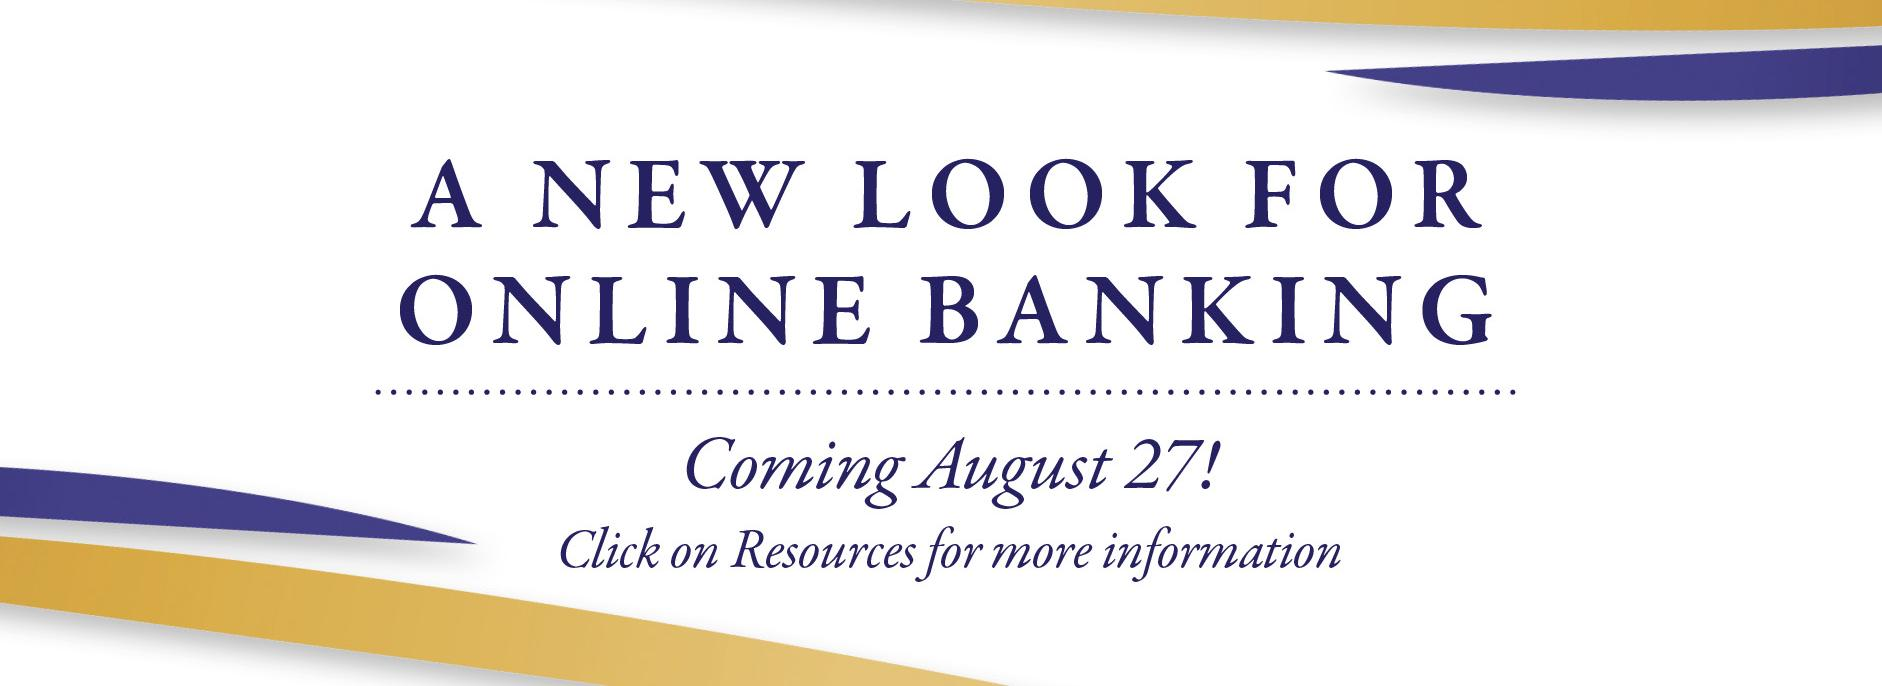 A New Look for Online Banking, Coming August 27.  Click on Resources for more information.  No image.